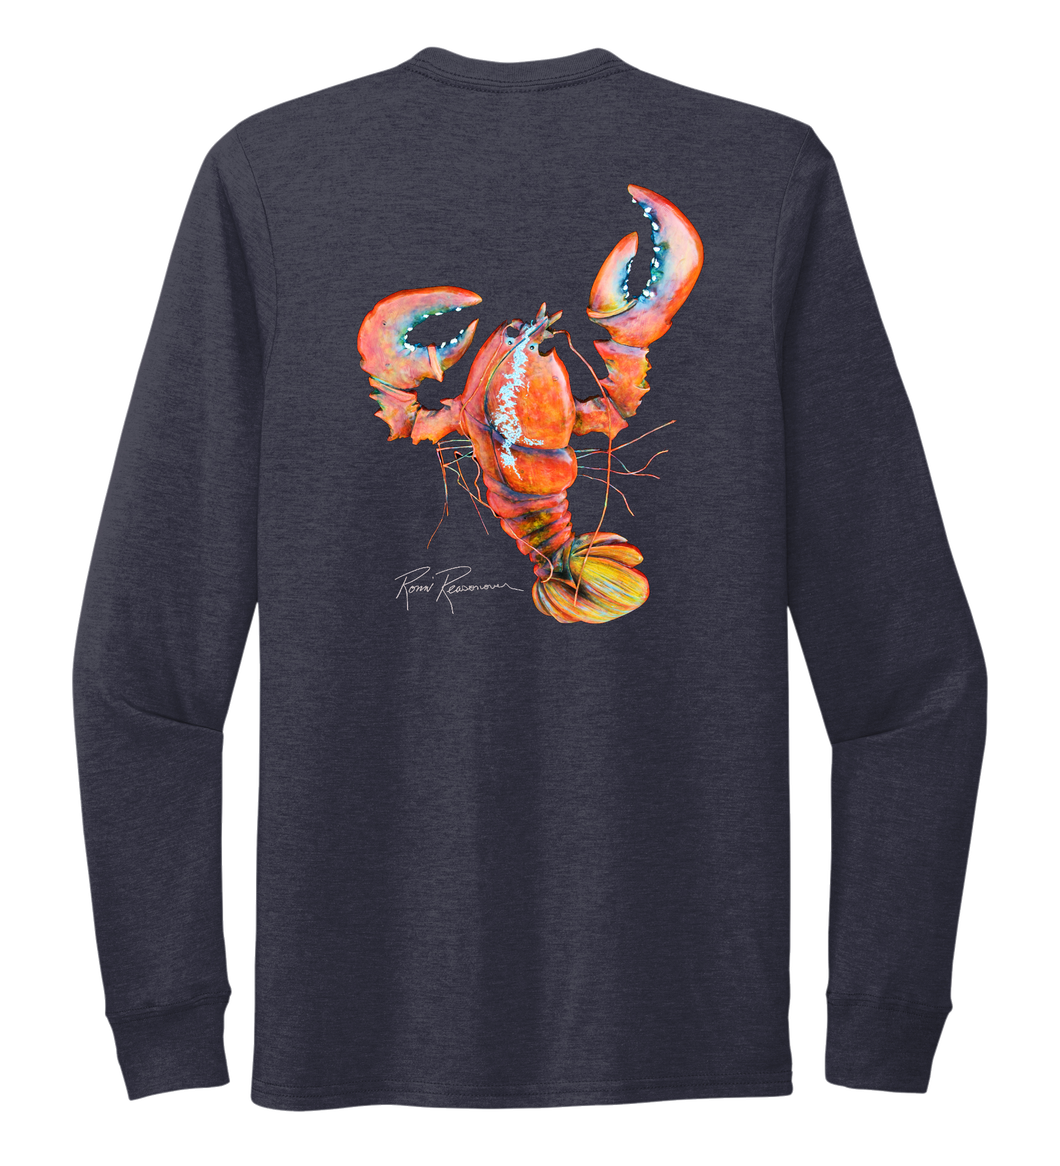 Ronnie Reasonover, The Lobster, Crew Neck Long Sleeve T-Shirt in Deep Sea Blue